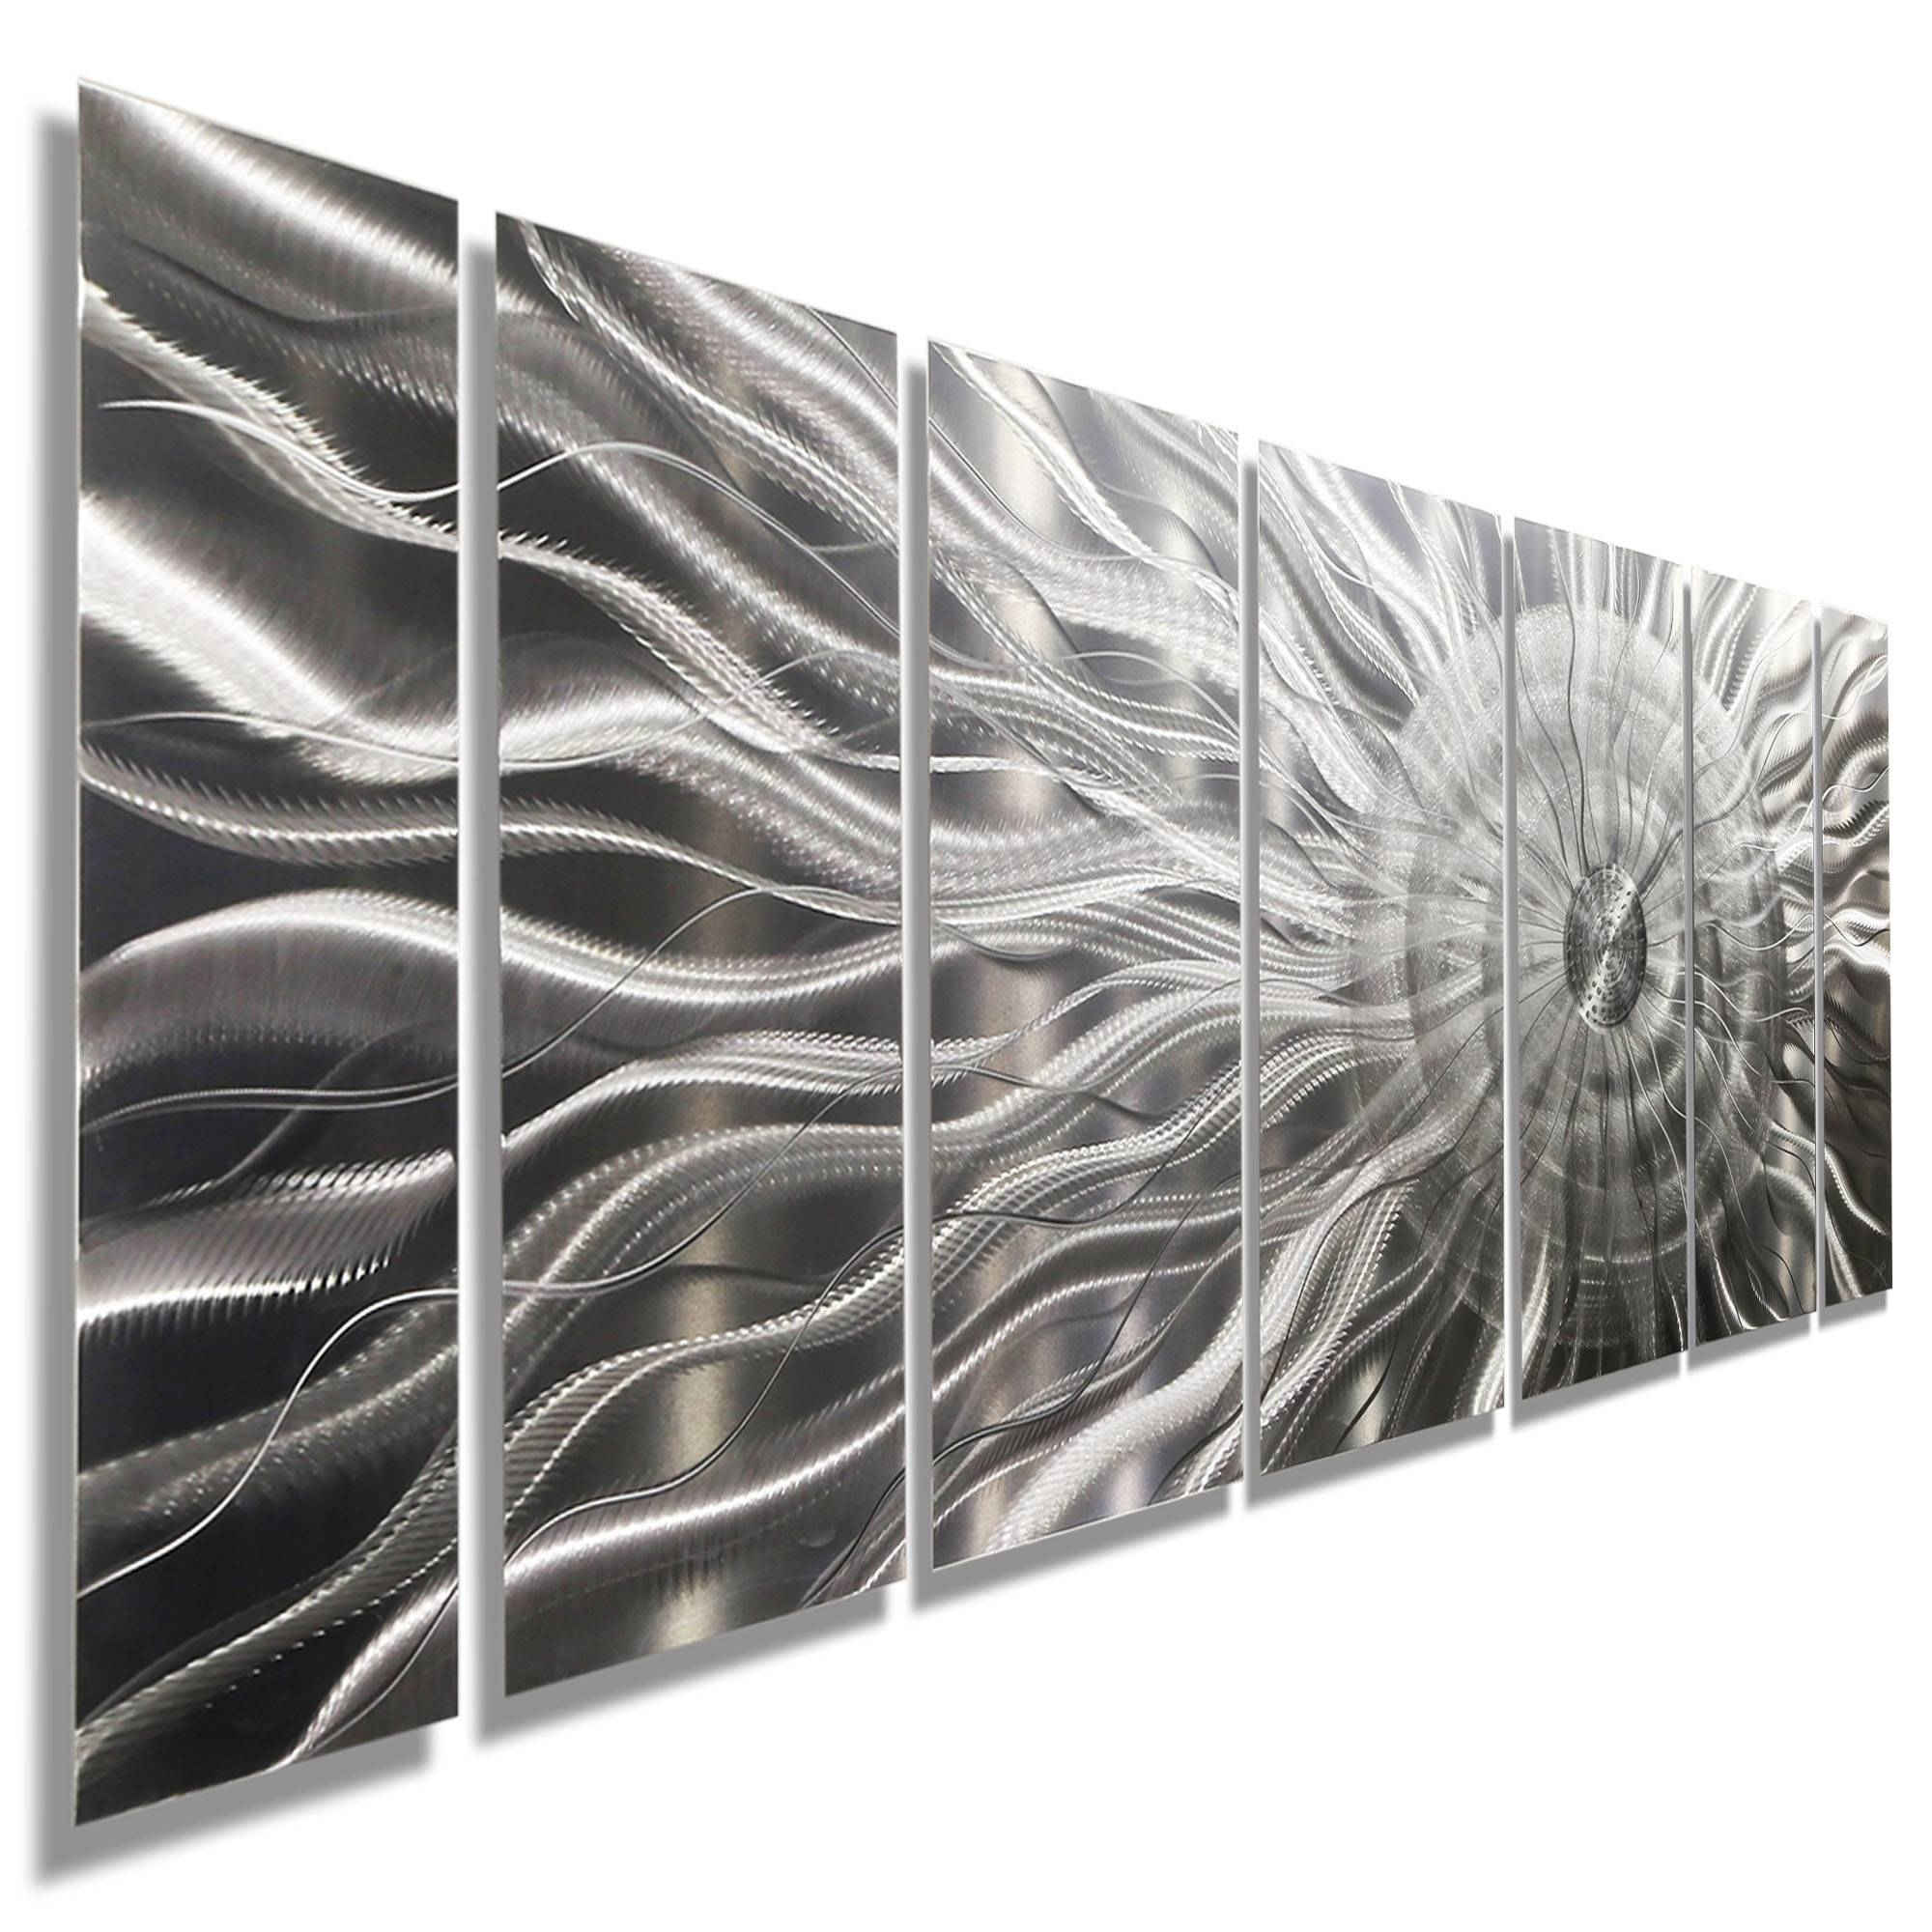 Photon Xl – Extra Large Modern Abstract Silver Corporate Metal Intended For Most Recently Released Large Metal Wall Art Sculptures (View 14 of 20)